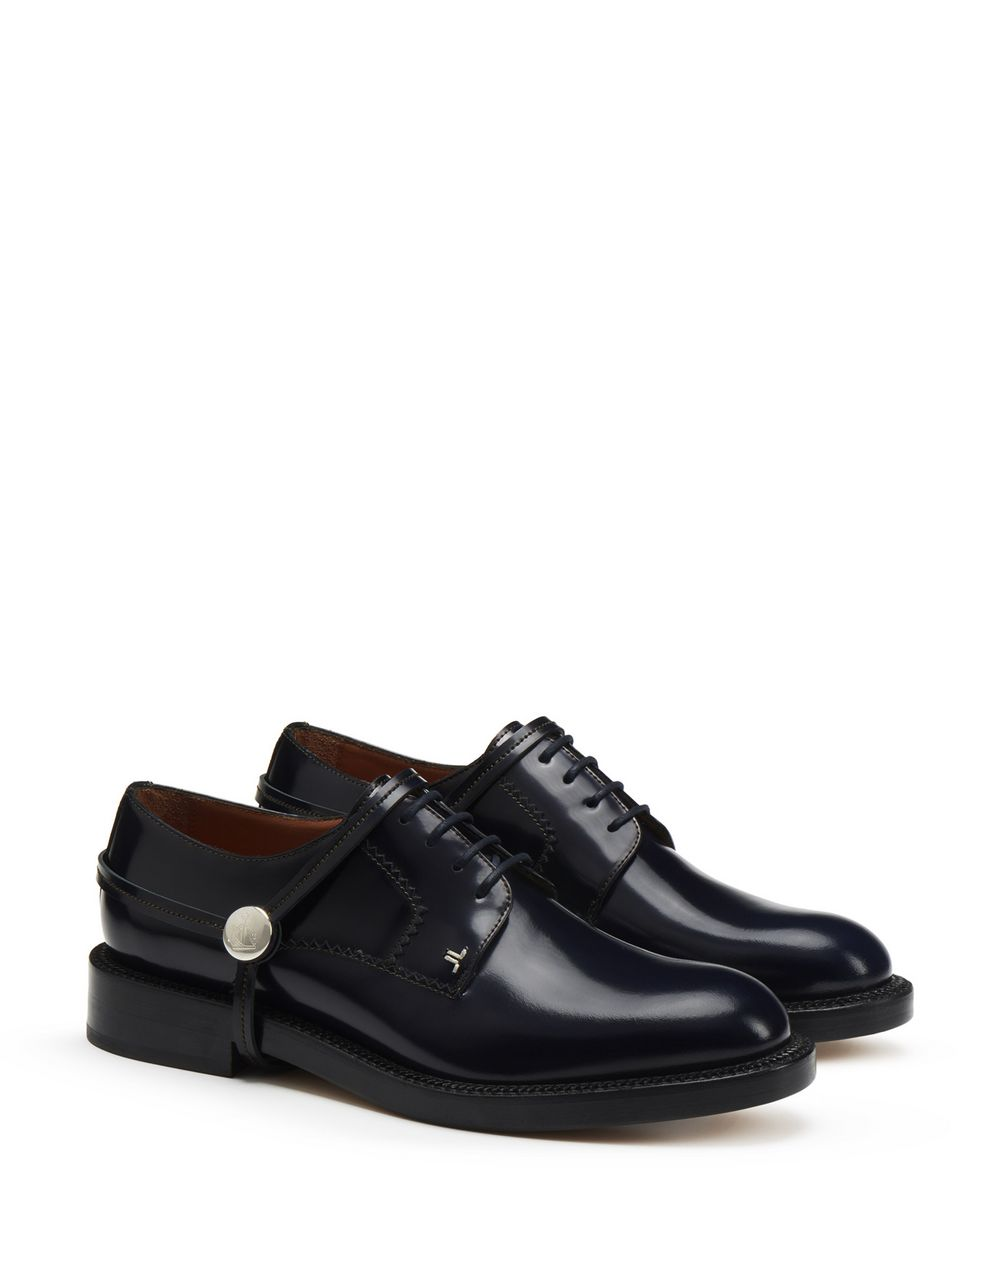 SHINY CALFSKIN LEATHER DERBY SHOE - Lanvin